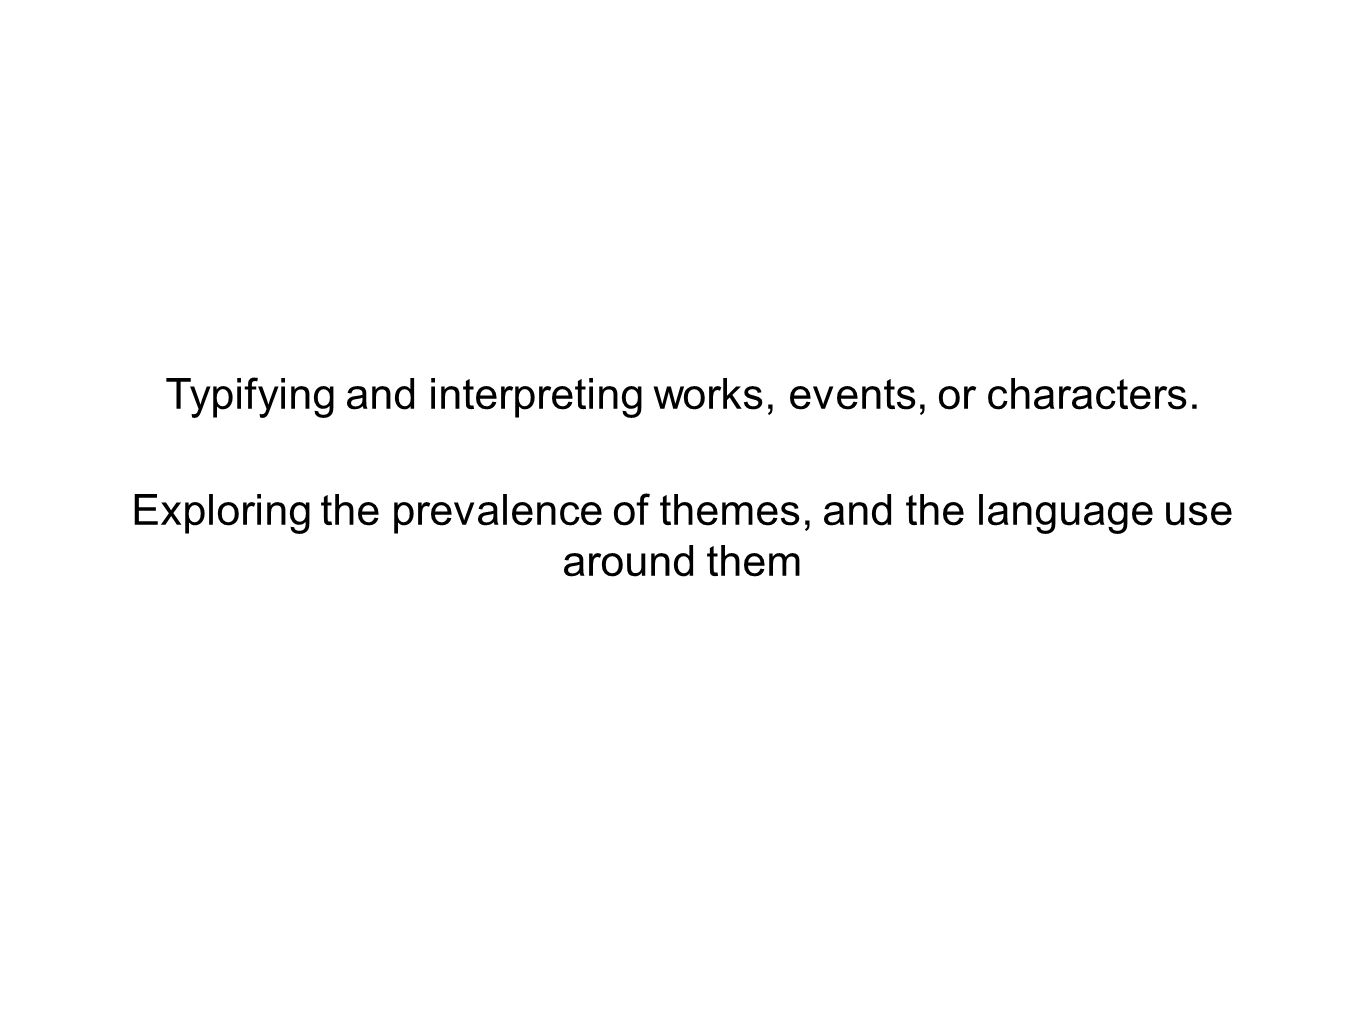 Typifying and interpreting works, events, or characters.